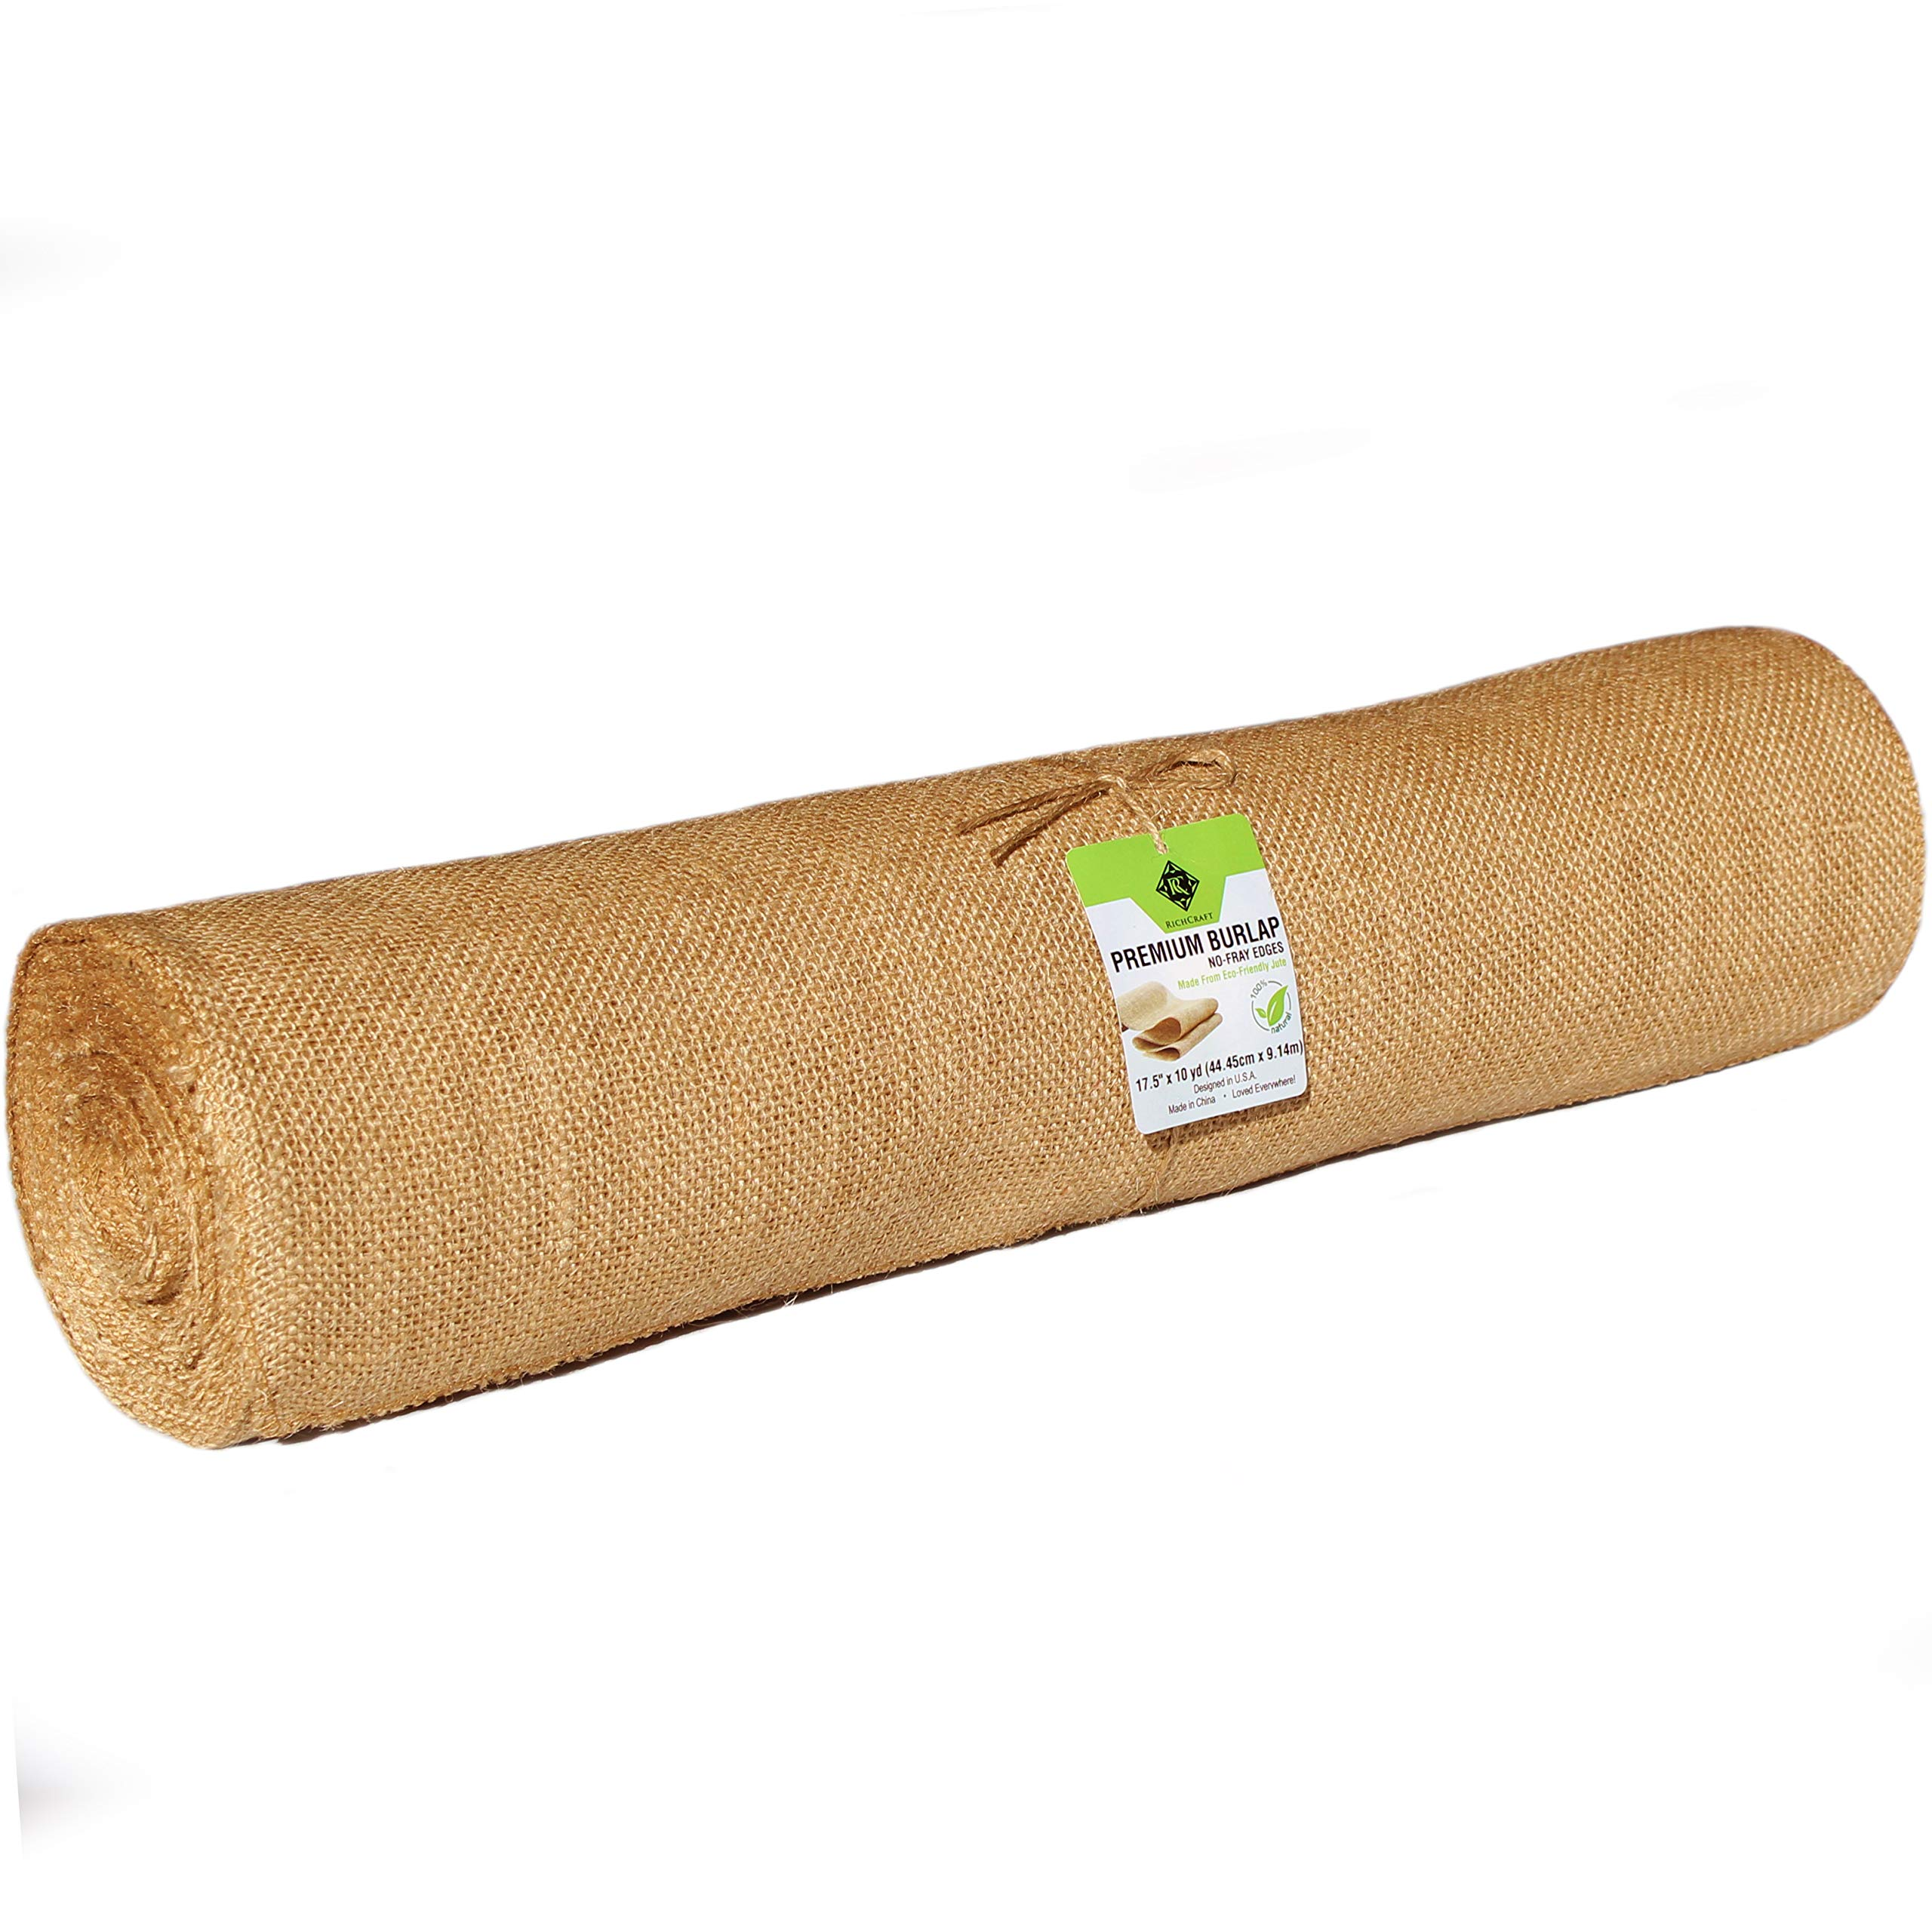 RichCraft Wide 18'' Burlap Table Runner Roll, NO-FRAY NO-Mess ~ 18'' Wide x 10 Yards Long Table Runner Fabric w/Finished Edges. Perfect for Weddings, Placemat, Crafts. Decorate Without The Mess! by RichCraft (Image #4)